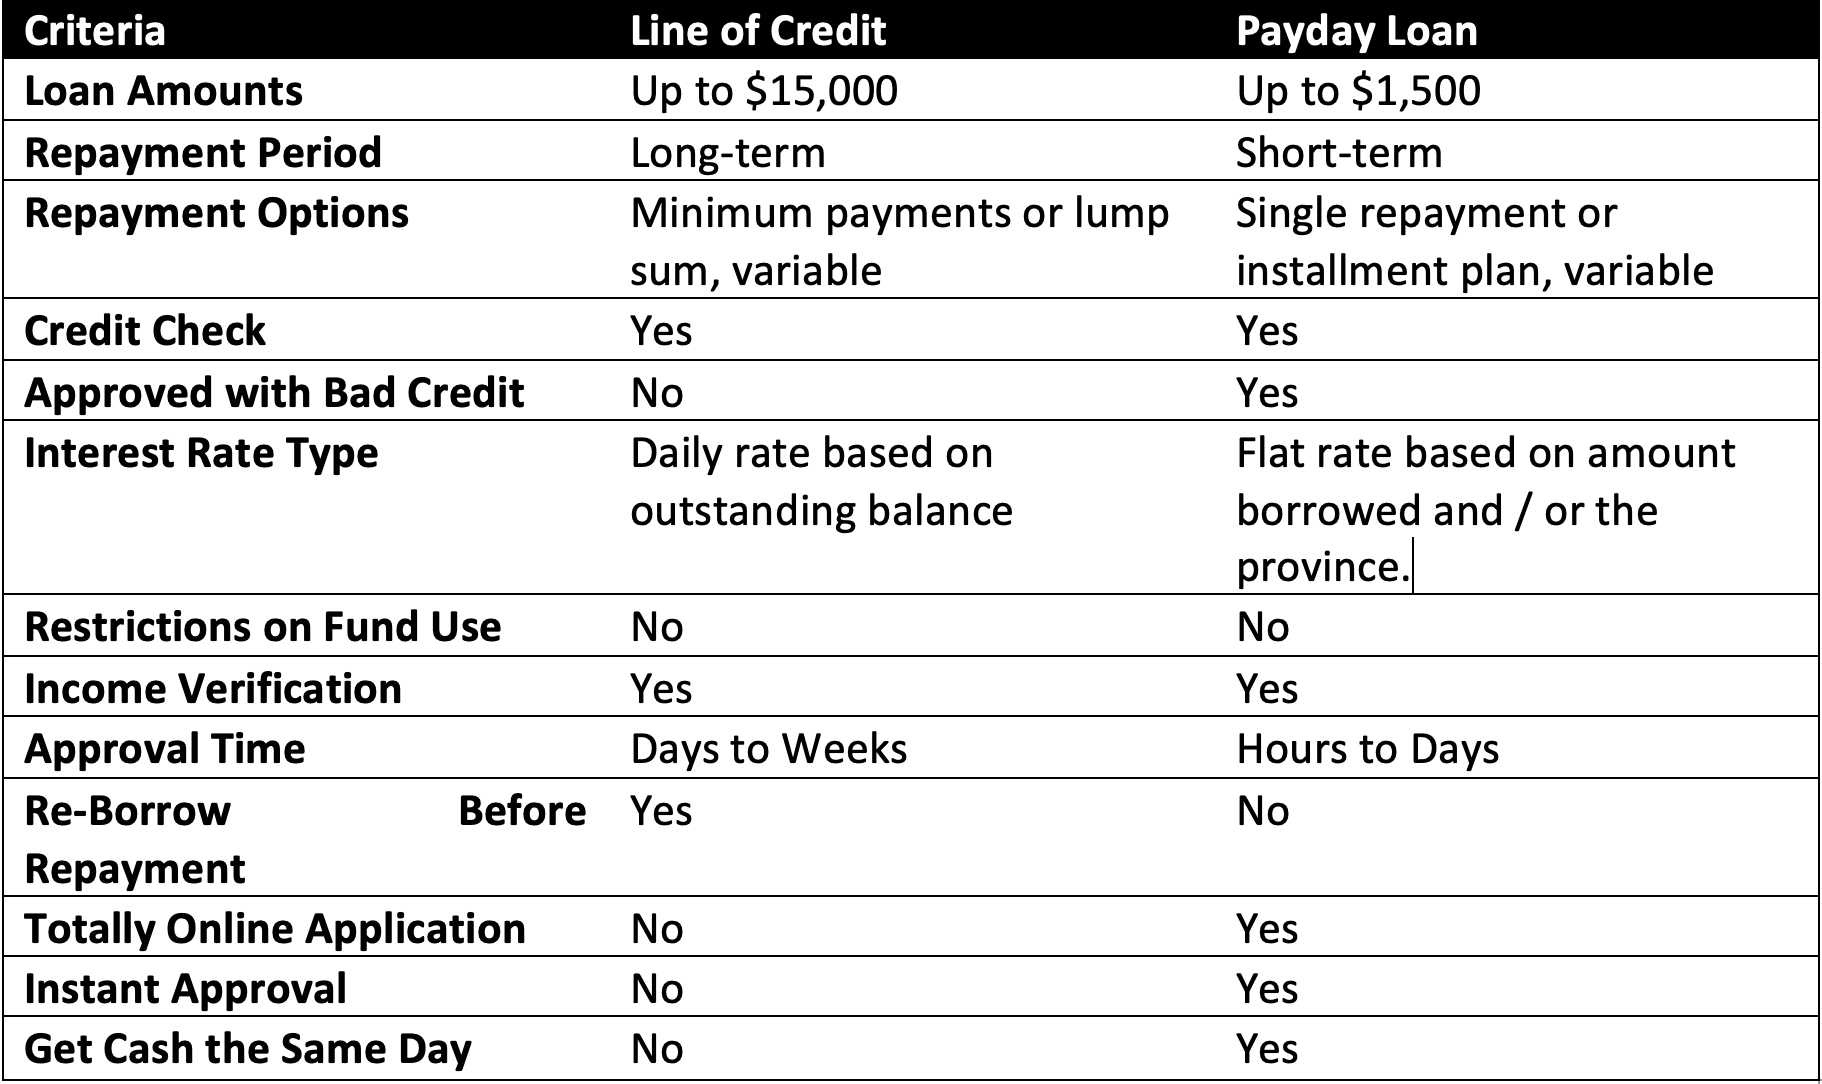 Comparison-Chart-of-Personal-Lines-of-Credit-Vs.-Payday-Loans-1